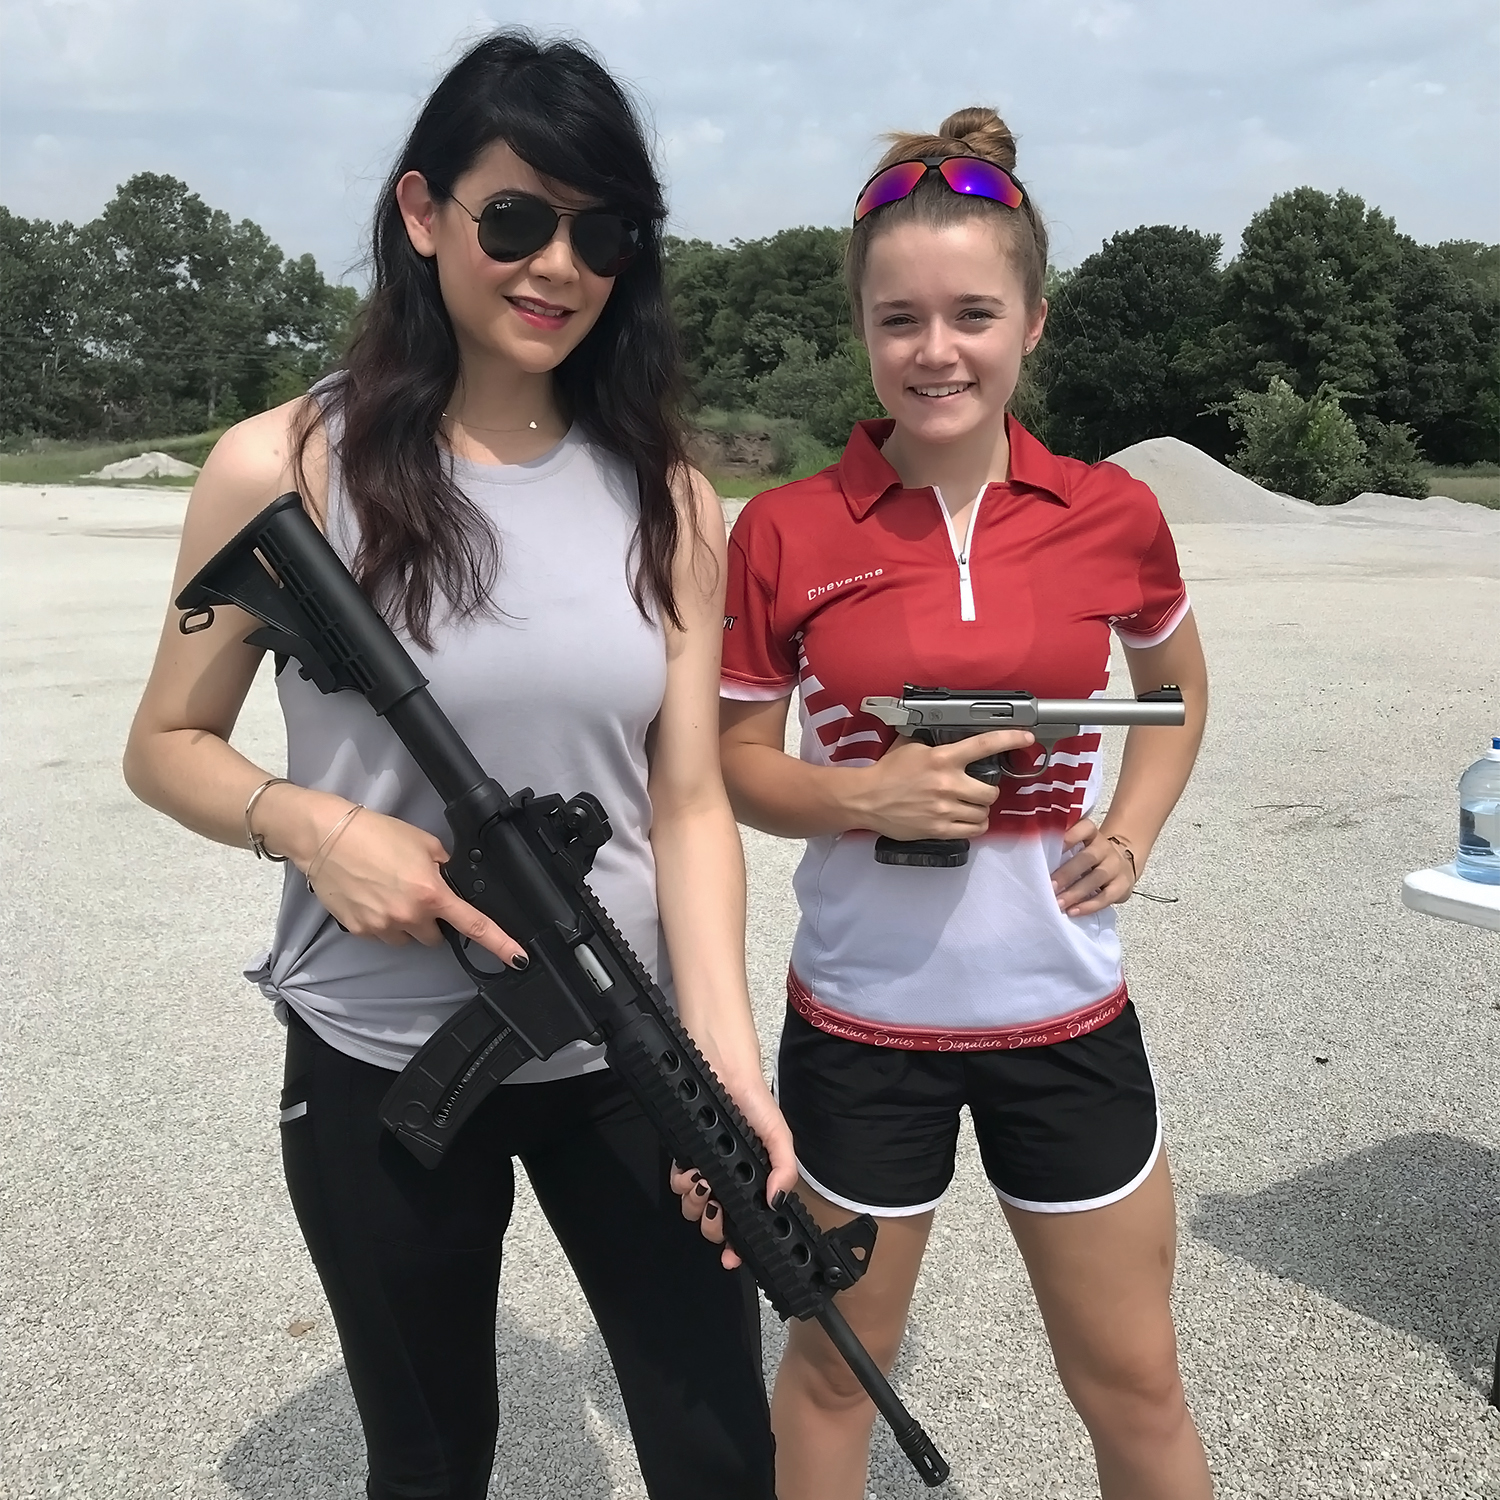 Cheyenne Dalton, Competitive Shooter, Love at First Shot